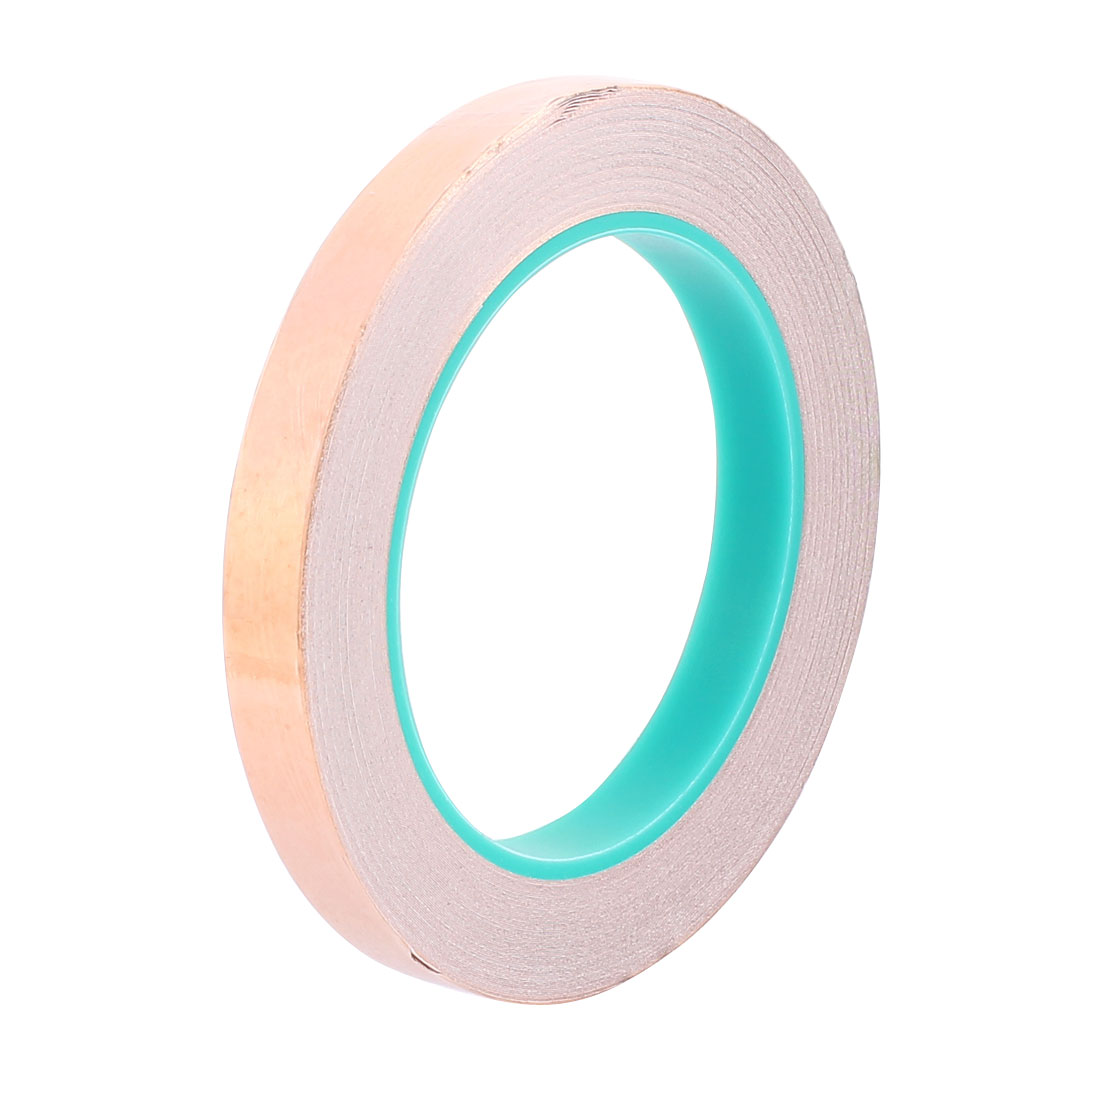 10mm Width 20m Long DIY Adhesive Double Sided Conductive Copper Foil Tape